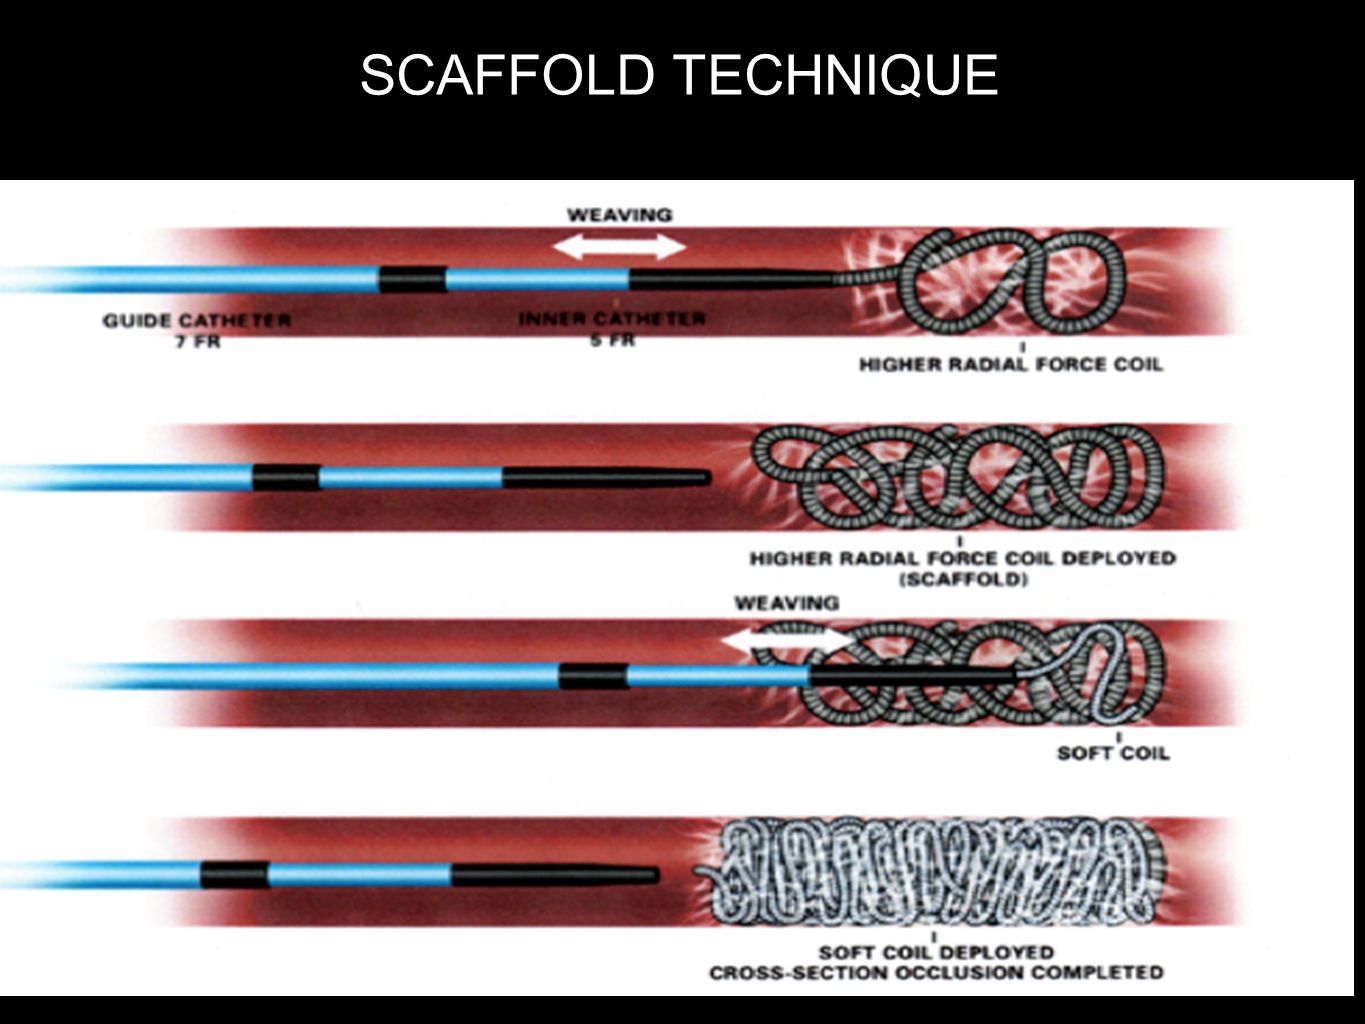 SCAFFOLD TECHNIQUE